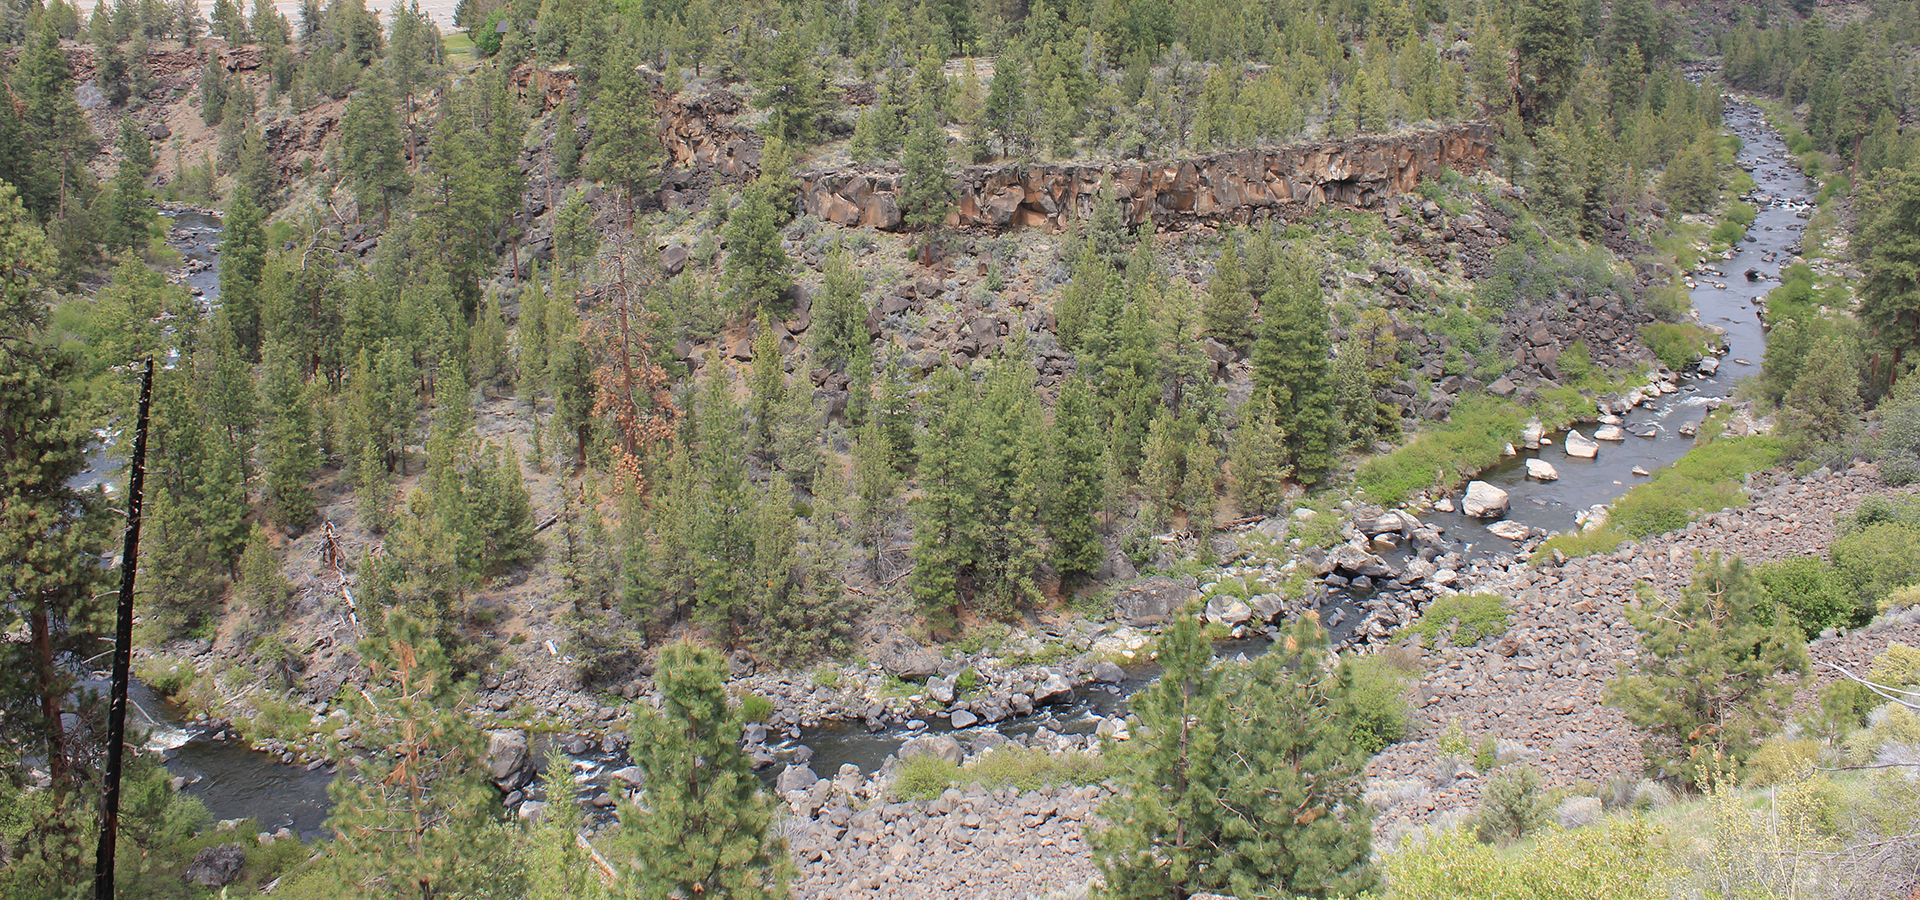 View of Deschutes River canyon